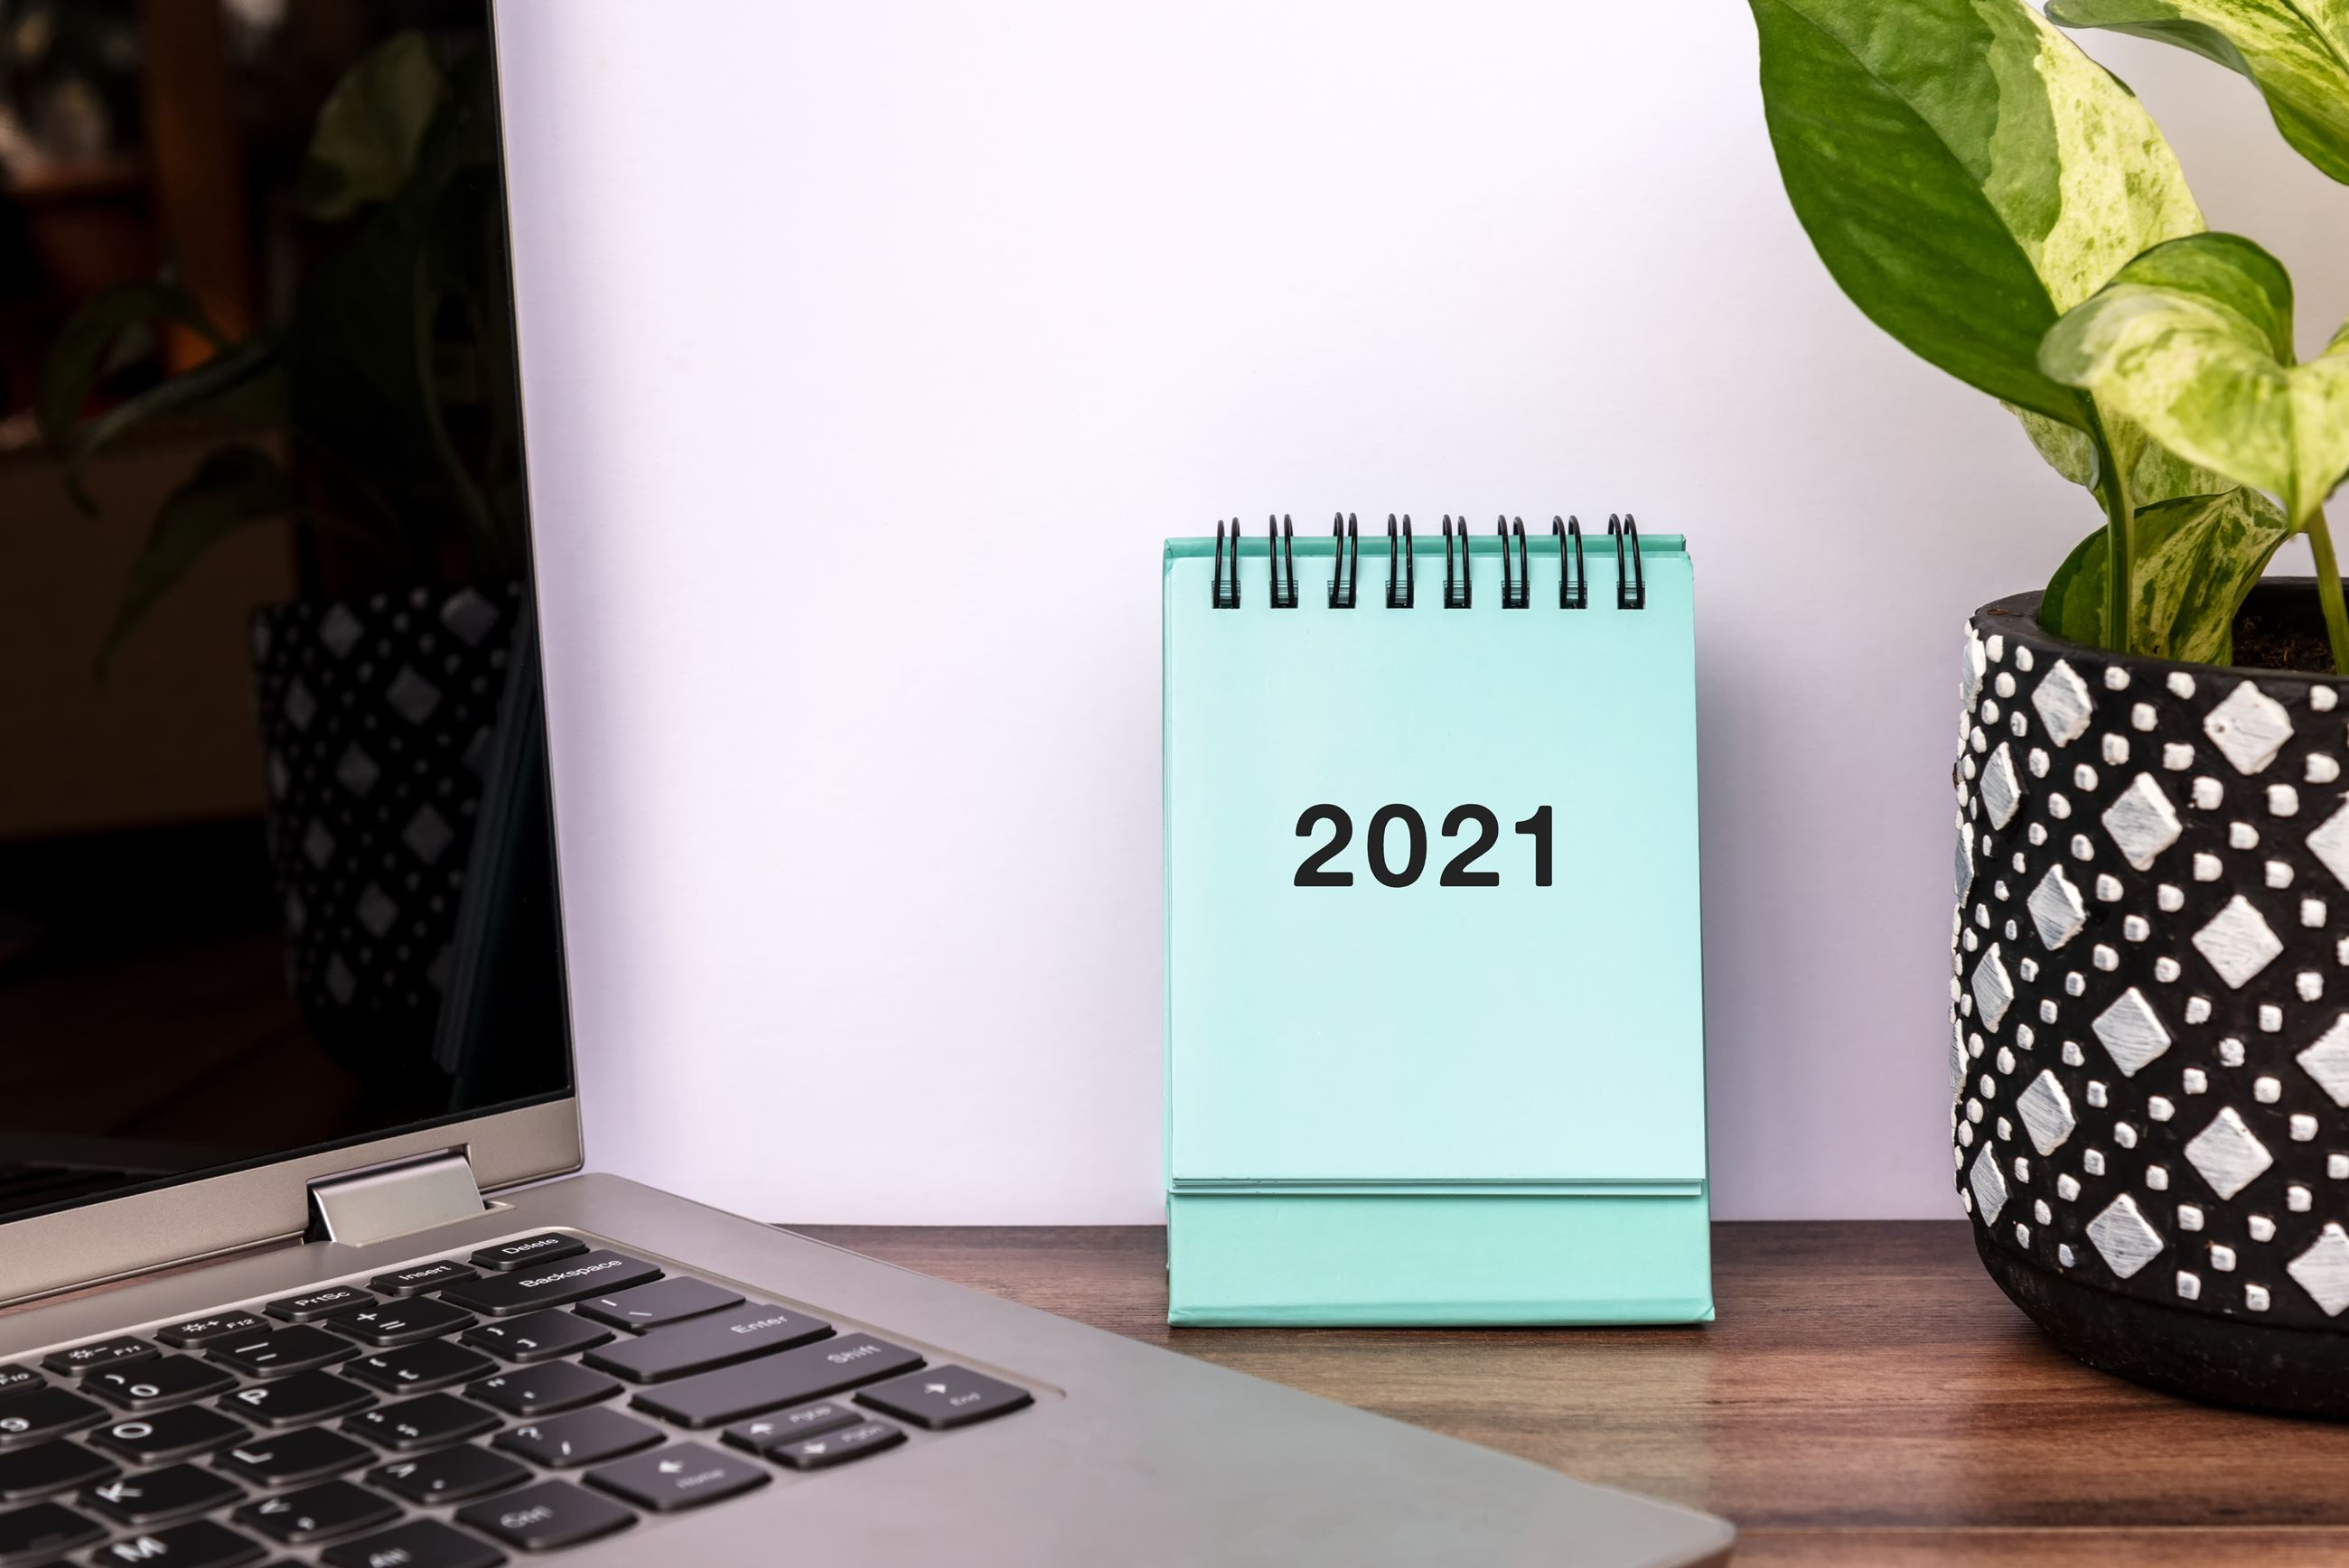 January 2021 teal calendar on desk